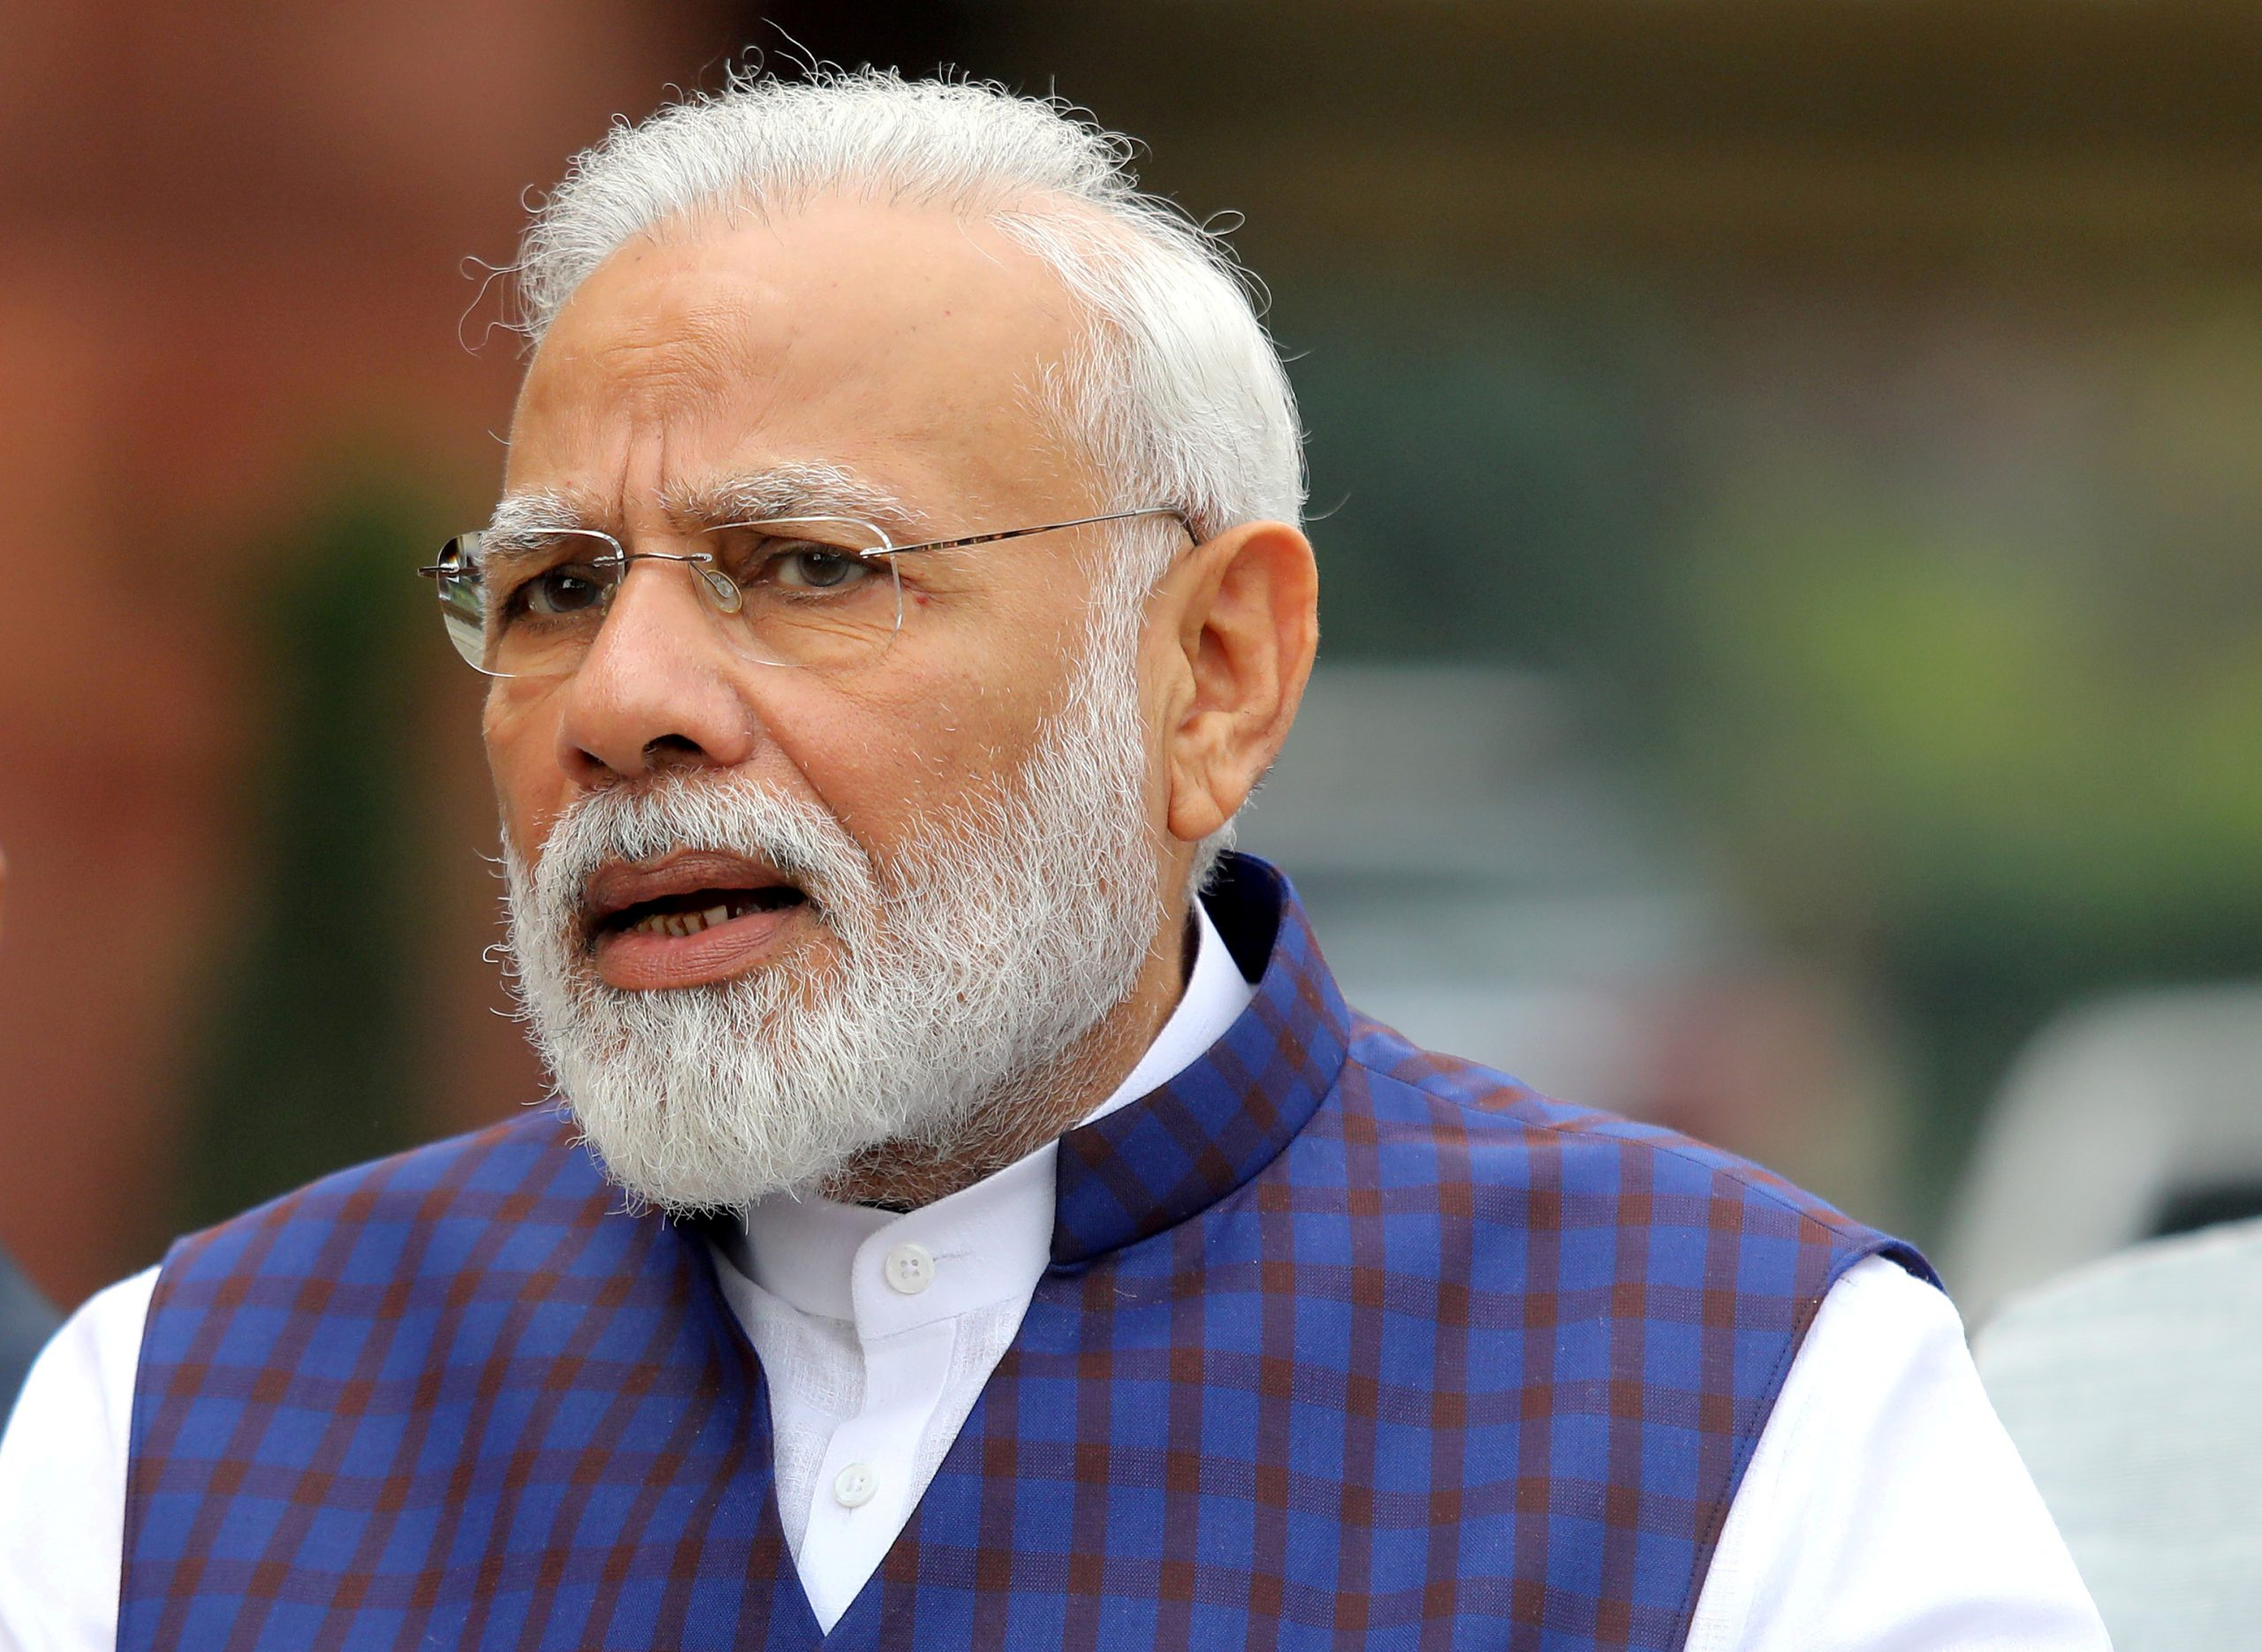 The hacked account, with over 2.5 million followers, was the official Twitter handle for Modi's personal website and the Narendra Modi app. His personal Twitter account was unaffected. (REUTERS/Altaf Hussain/File Photo